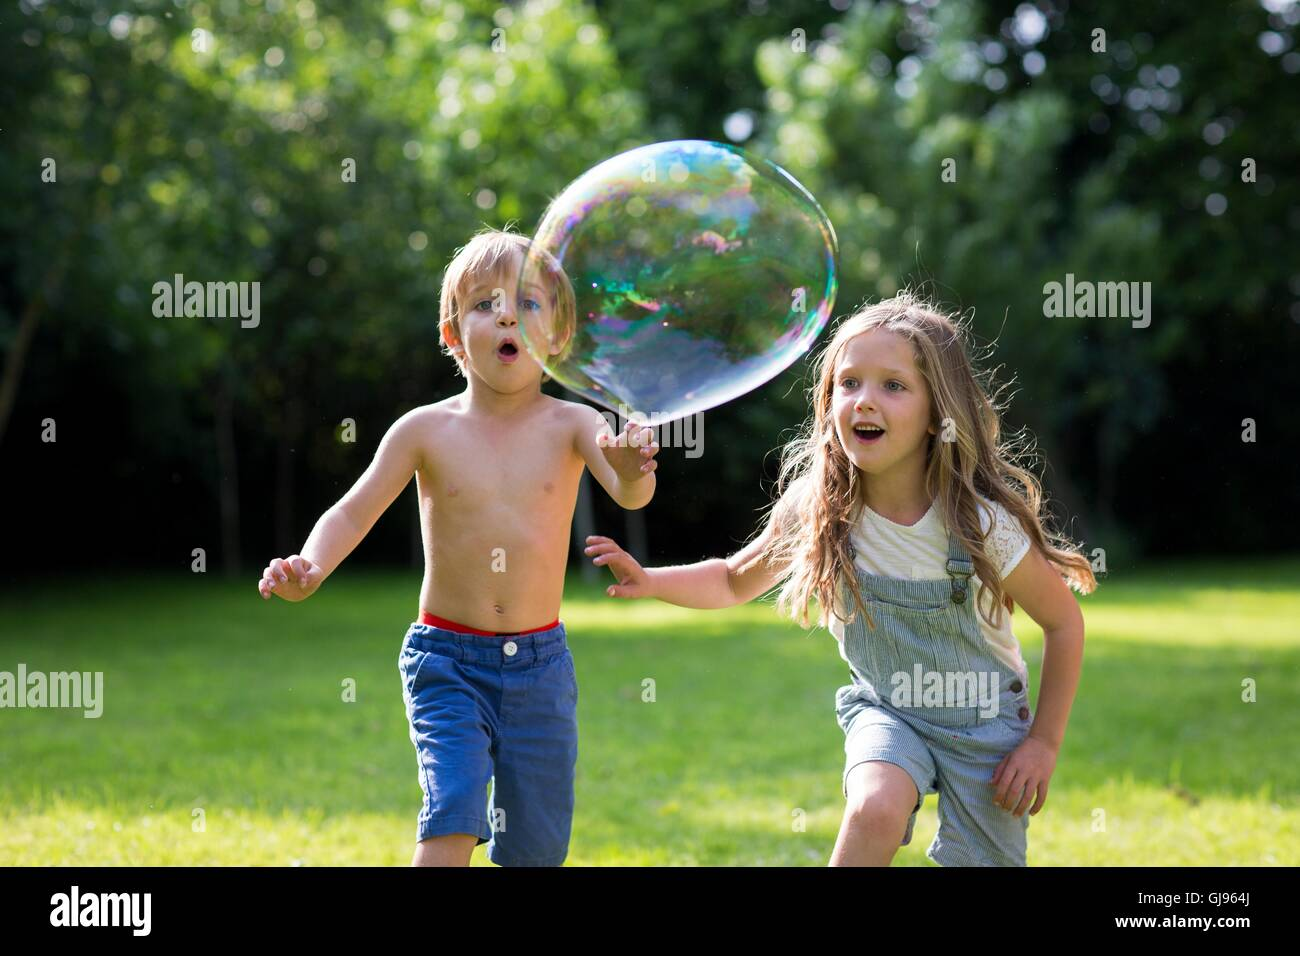 PROPERTY RELEASED. MODEL RELEASED. Brother and sister chasing bubbles in garden. - Stock Image